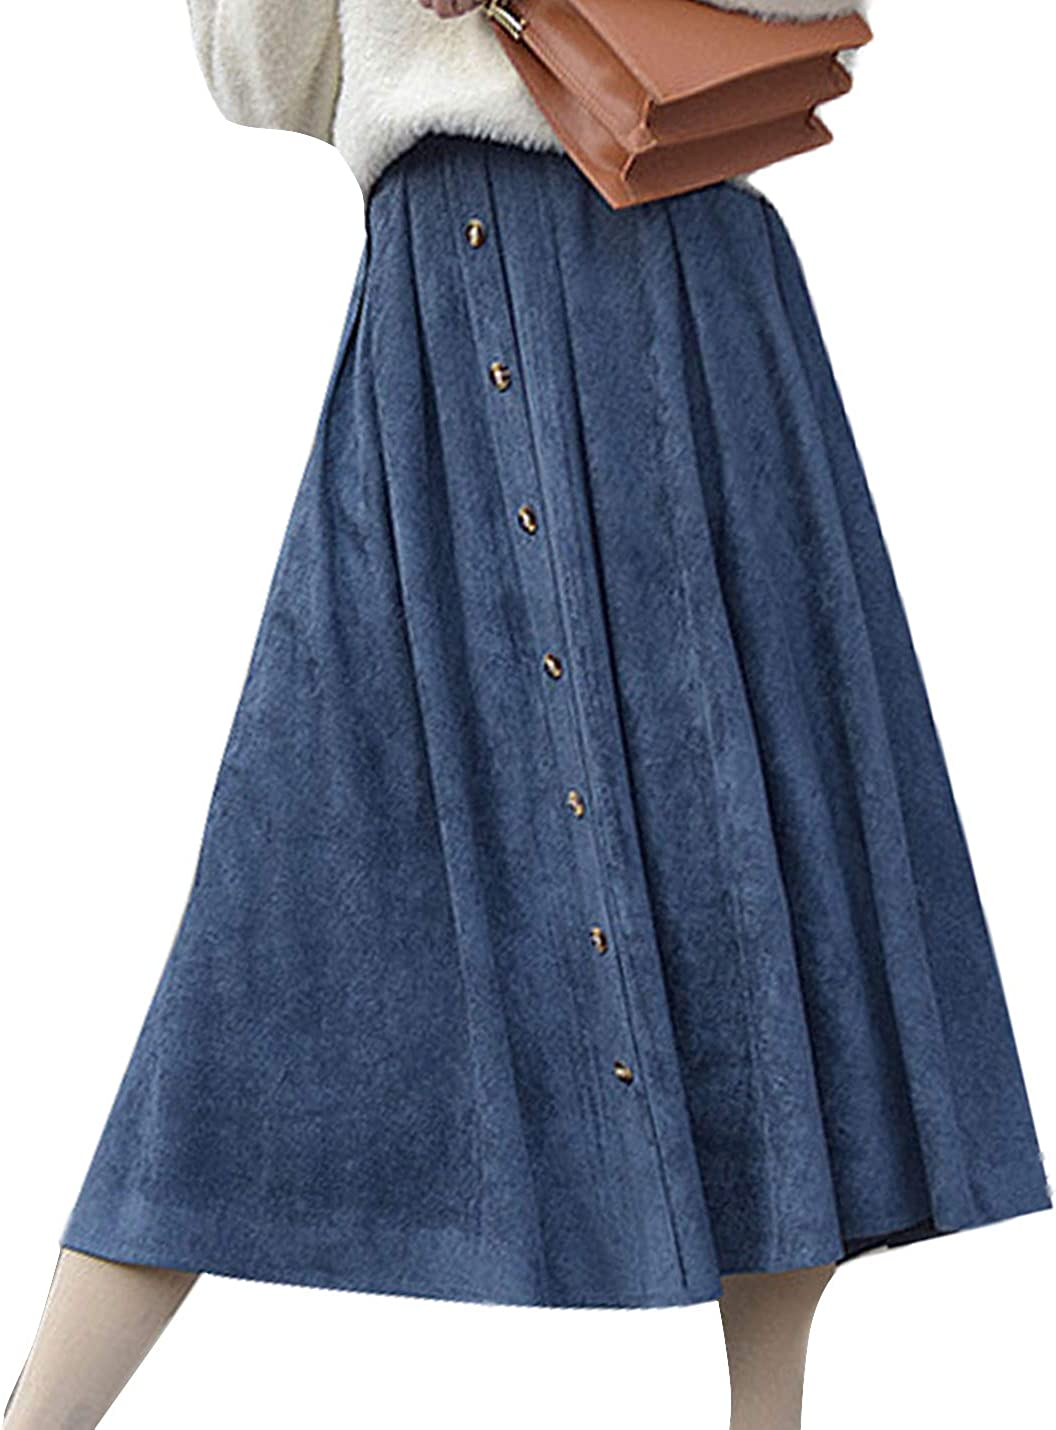 Yimoon Women's Casual Vintage Button Front Faux Suede A Line Midi Skirts